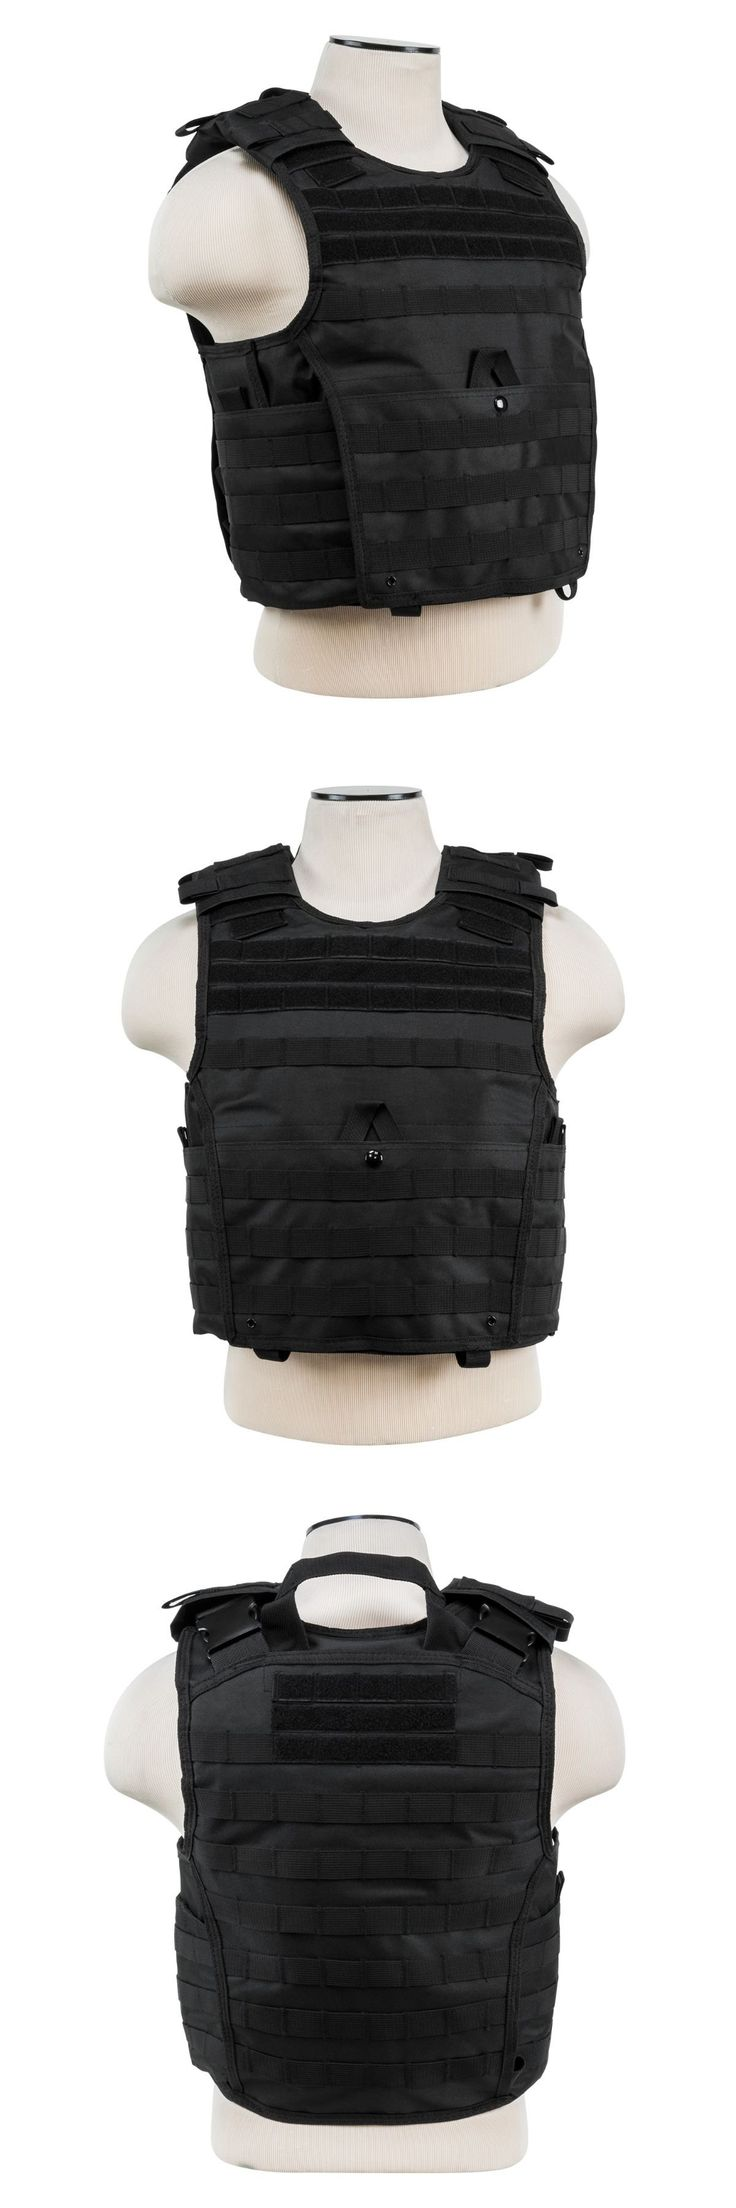 Chest Rigs and Tactical Vests 177891: Ncstar Vism Black Tactical Molle Operator Plate Carrier Body Armor Chest Rig -> BUY IT NOW ONLY: $42.7 on eBay!